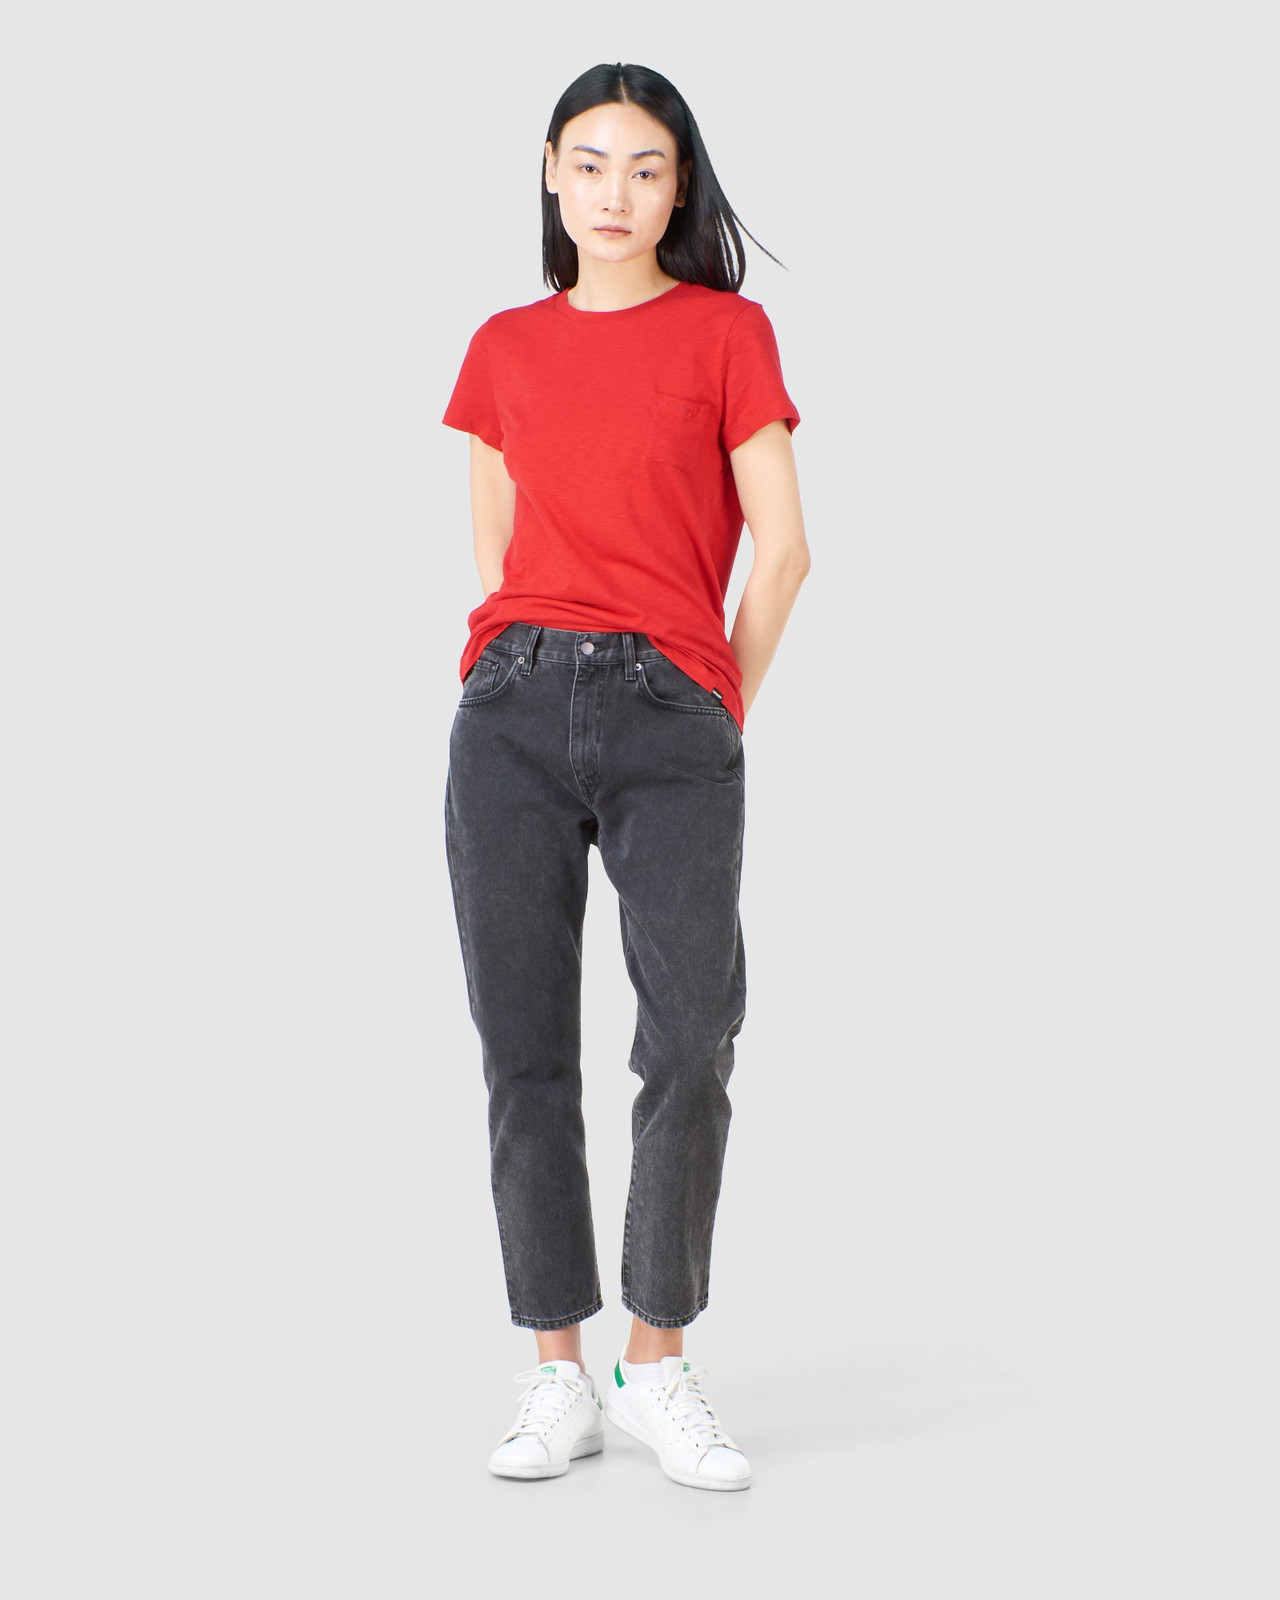 Superdry Womens SCRIPTED CREW TEE Red Plain T Shirts 1